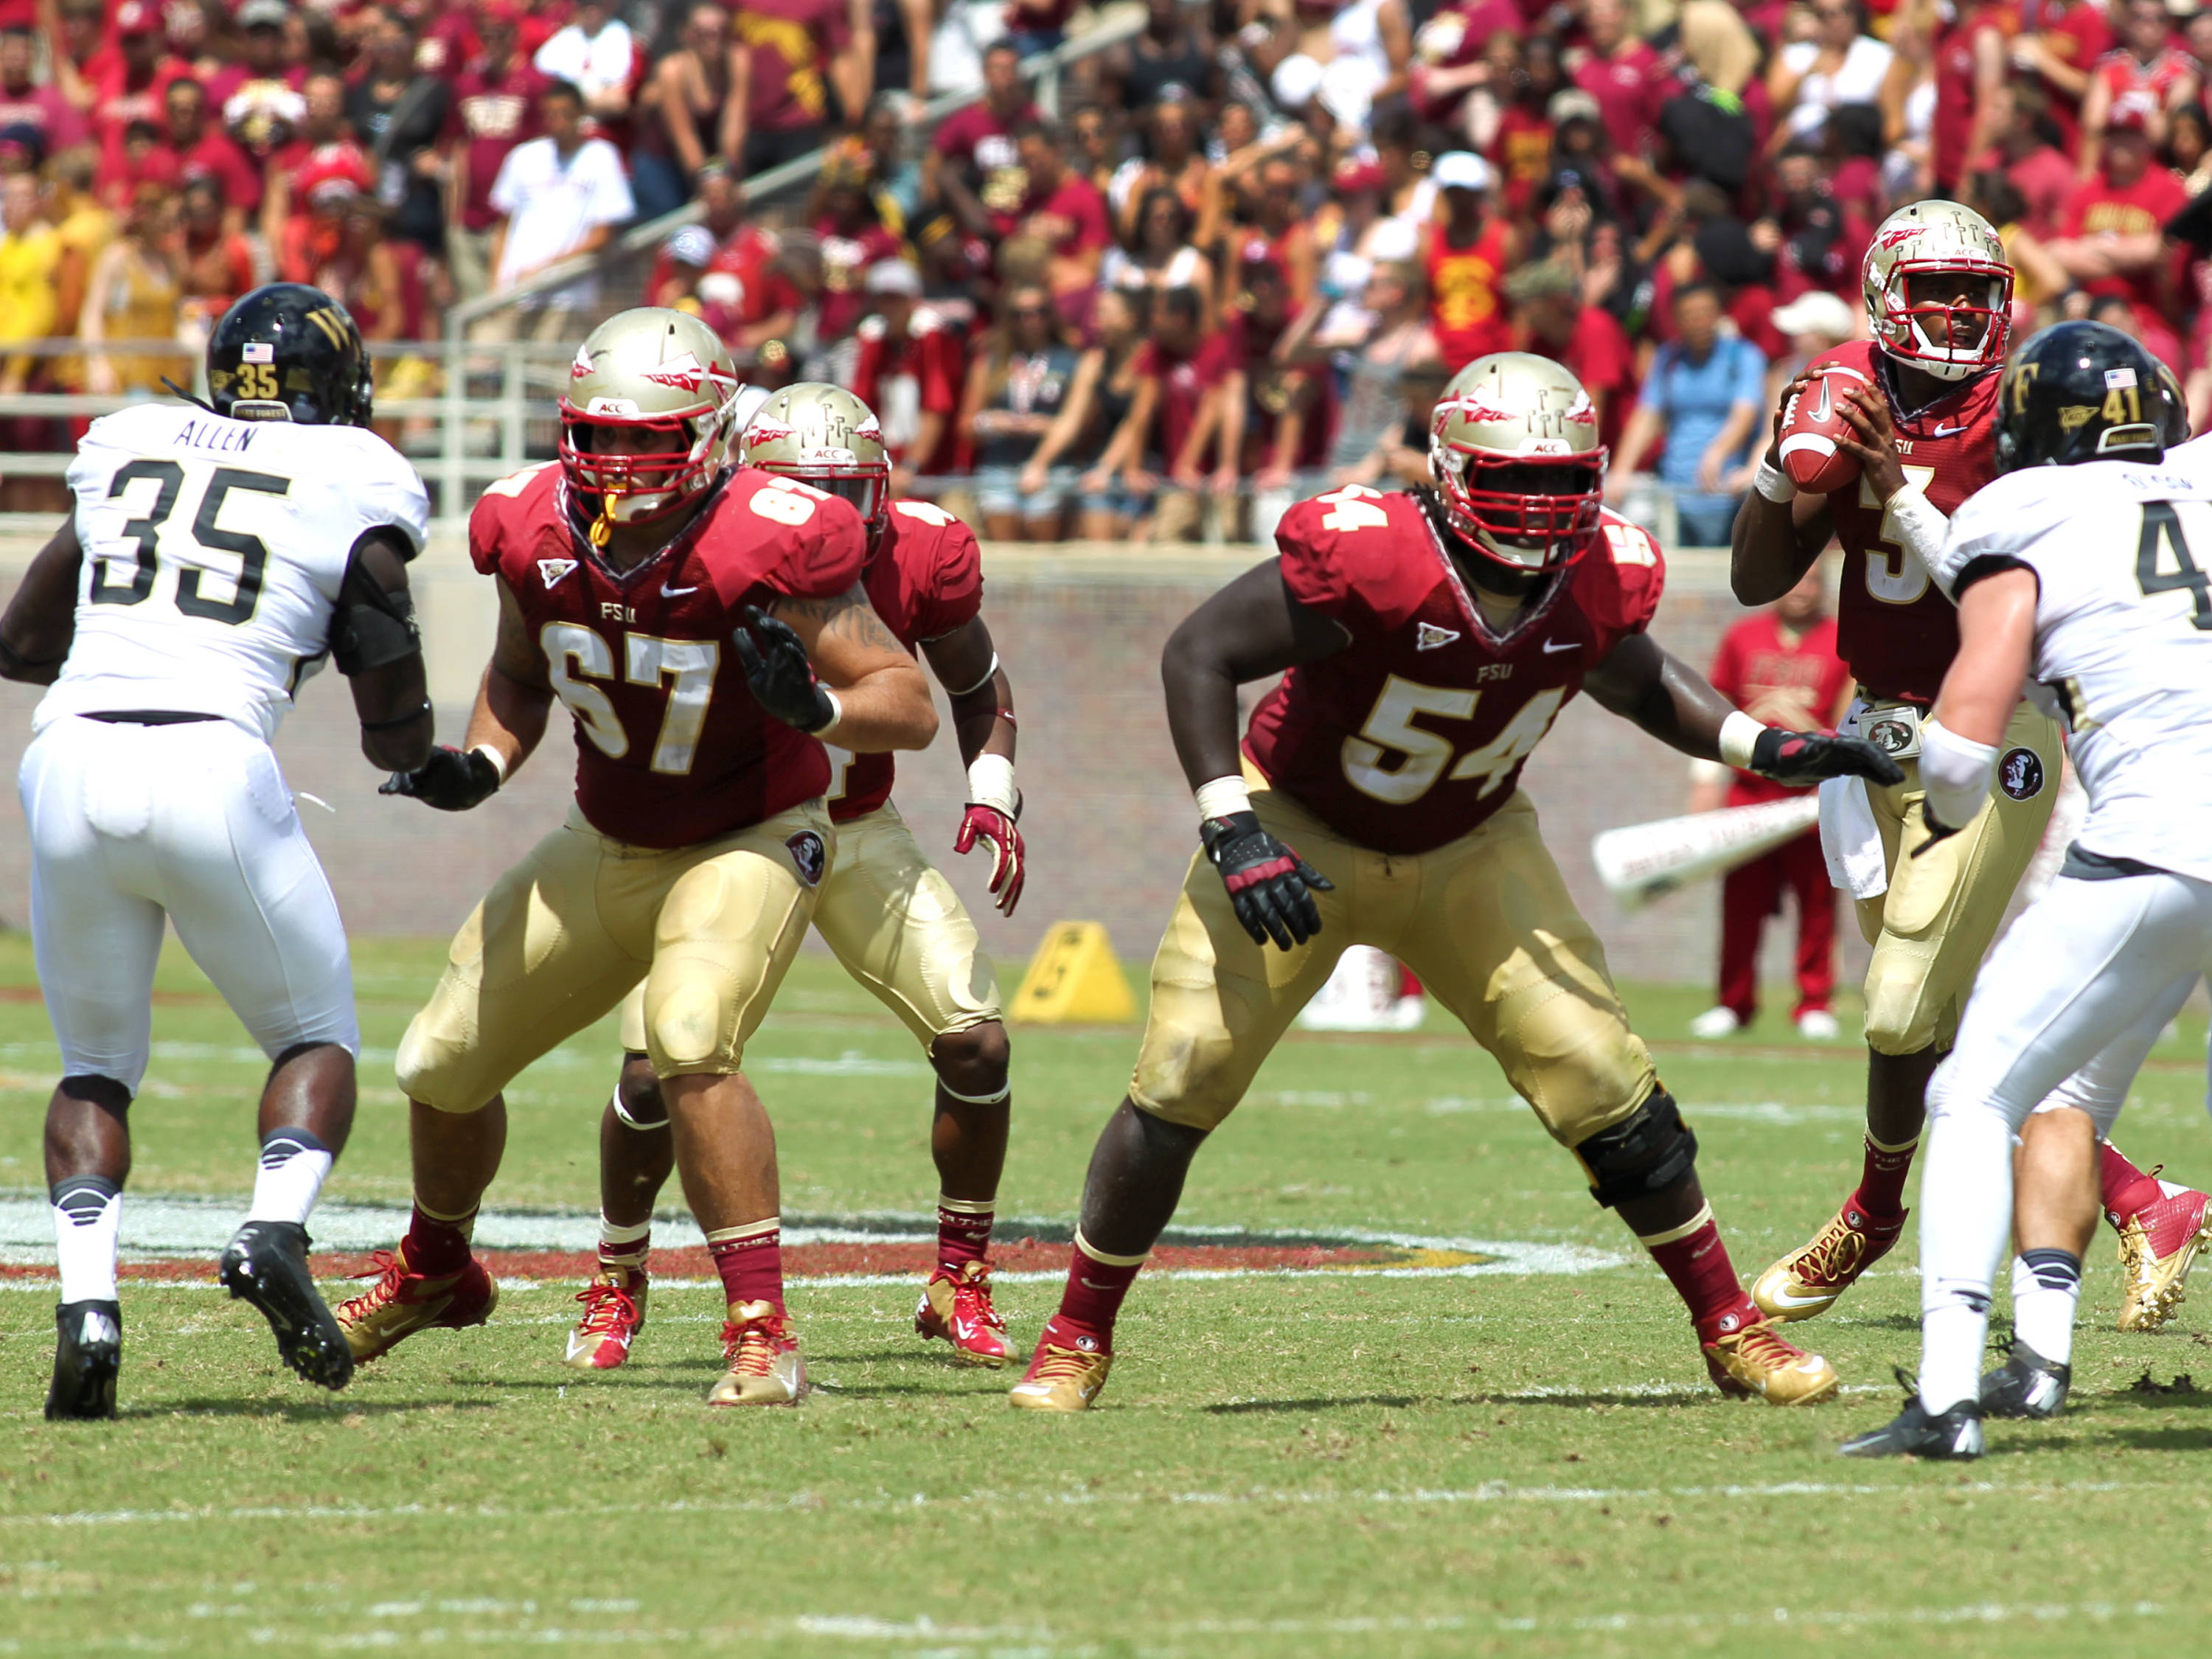 Daniel Glauser (67) and Tre' Jackson (54) protecting quarterback EJ Manuel (3), FSU vs Wake Forest, 9/15/12 (Photo by Steve Musco)